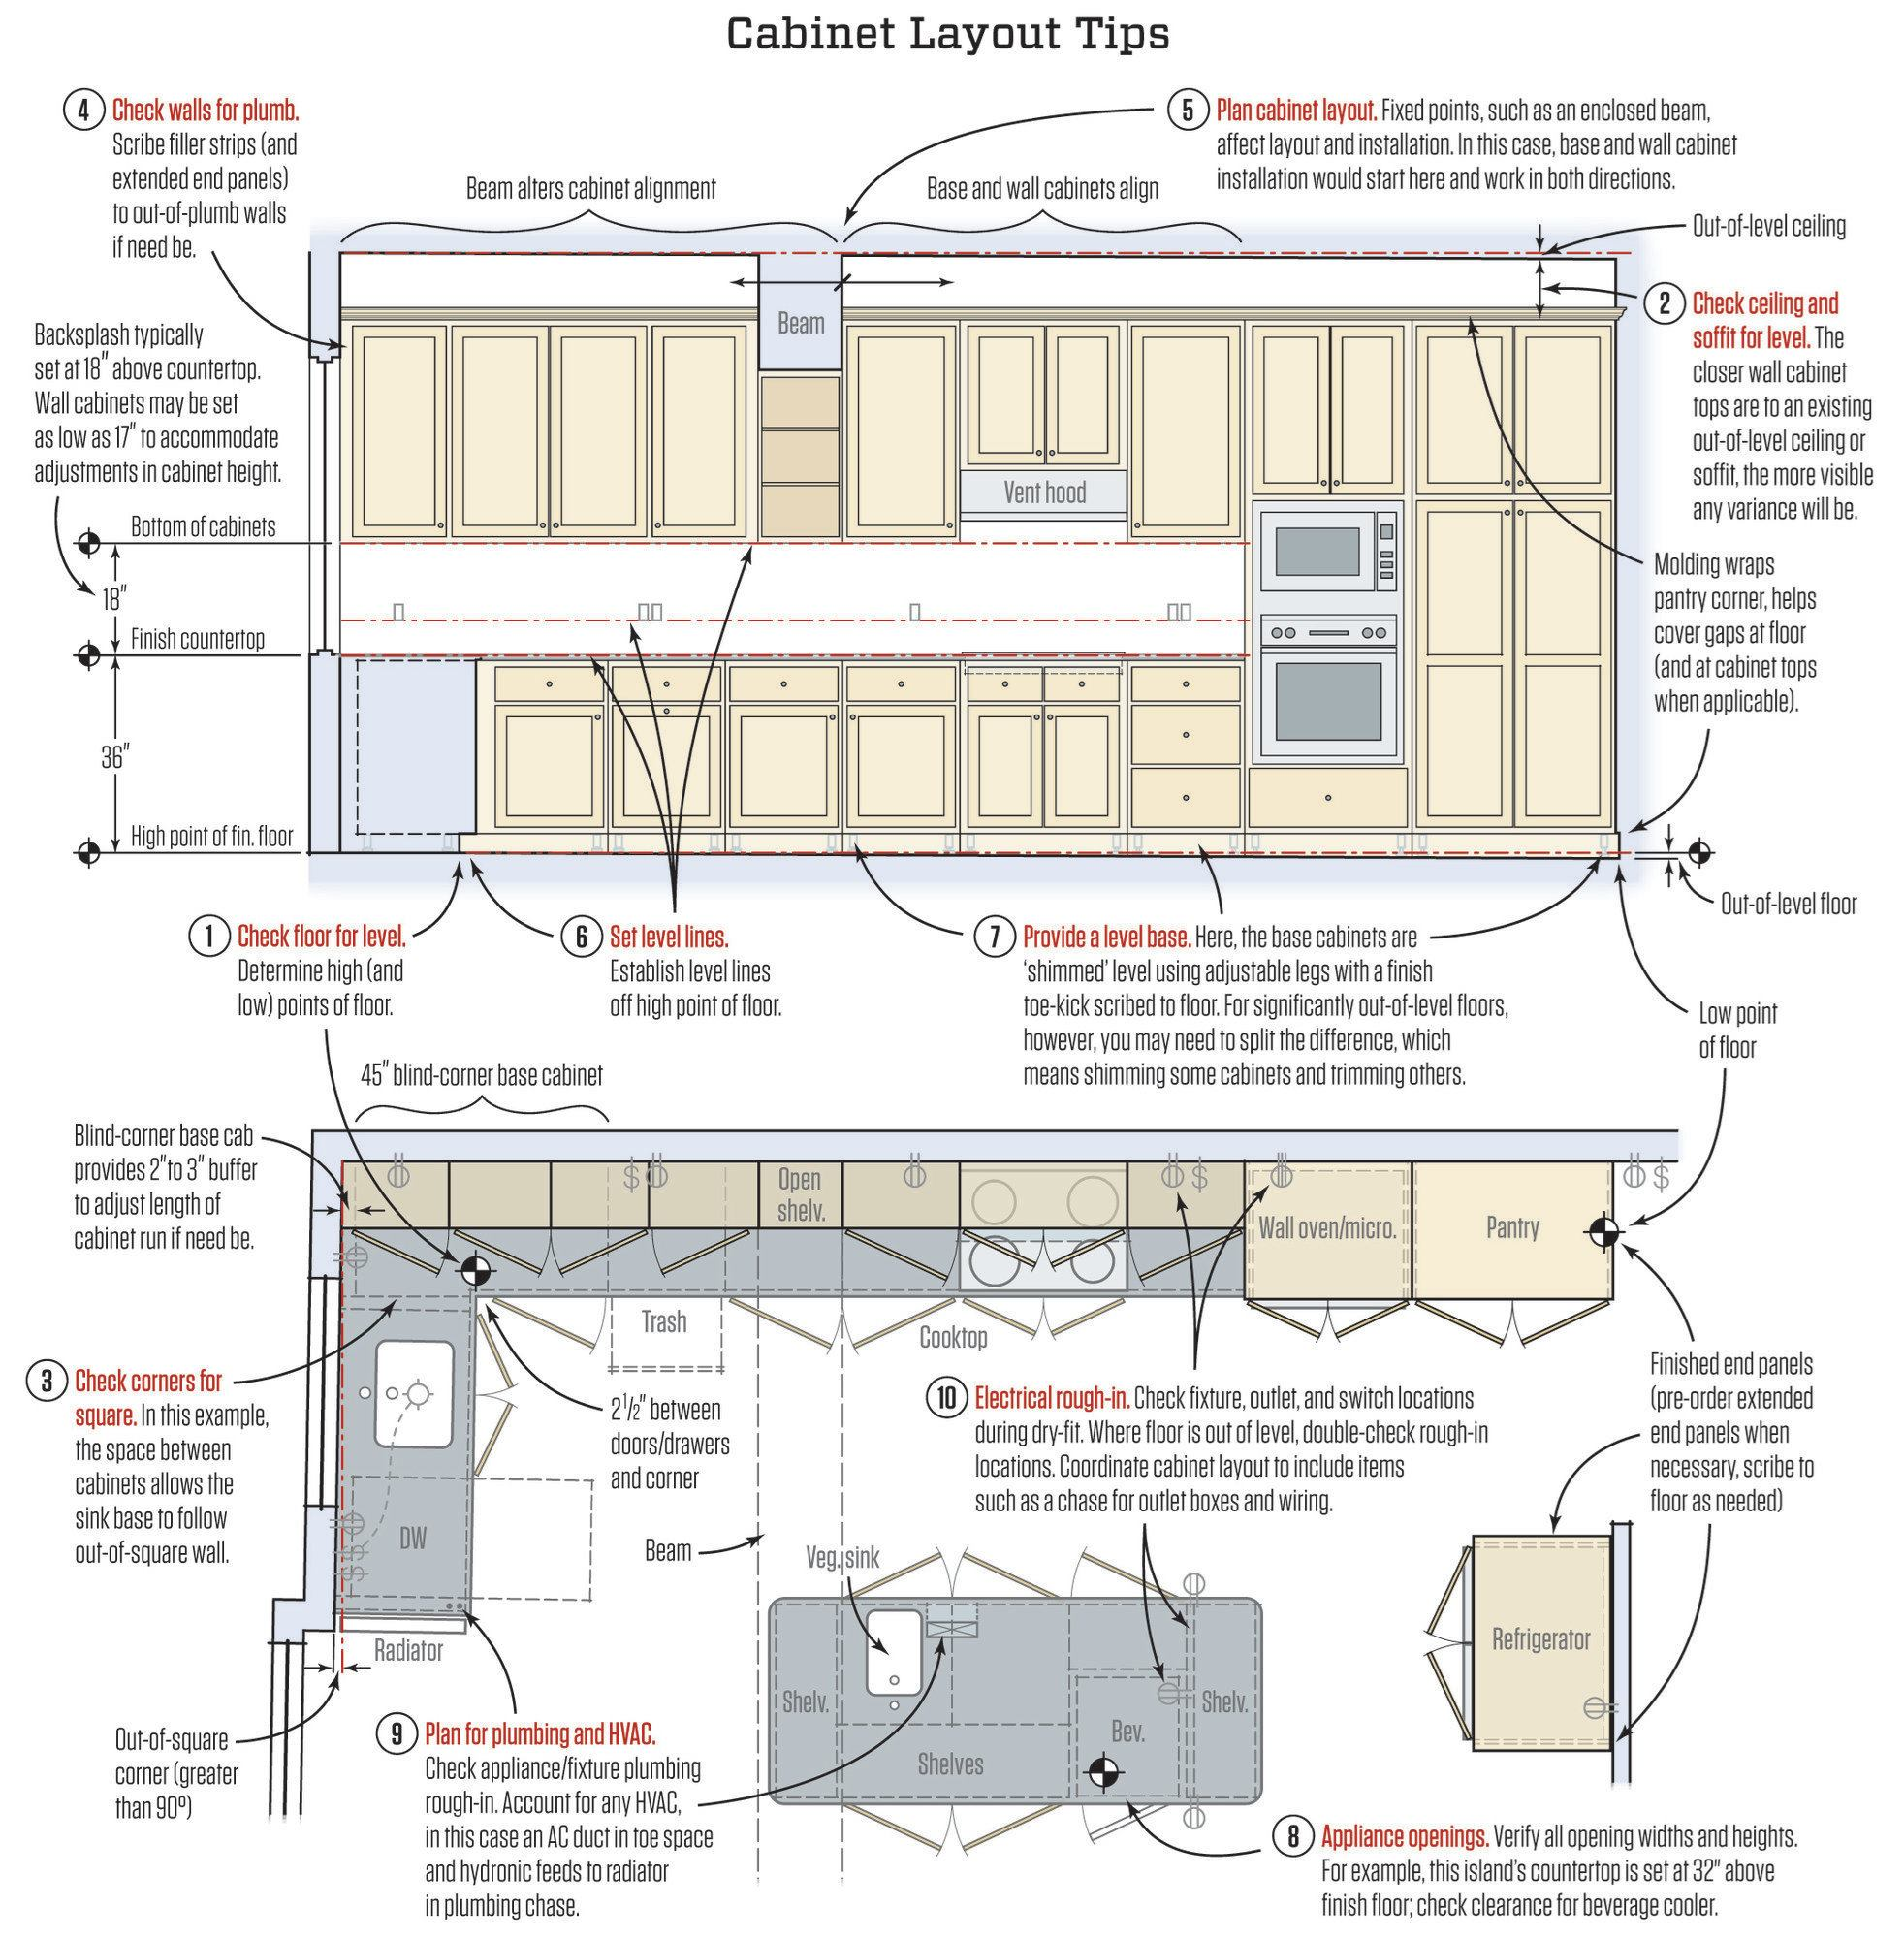 install shower plumbing diagram for toyota tundra engine setting kitchen cabinets | jlc online cabinets, kitchen, best practices, appliances, casework ...